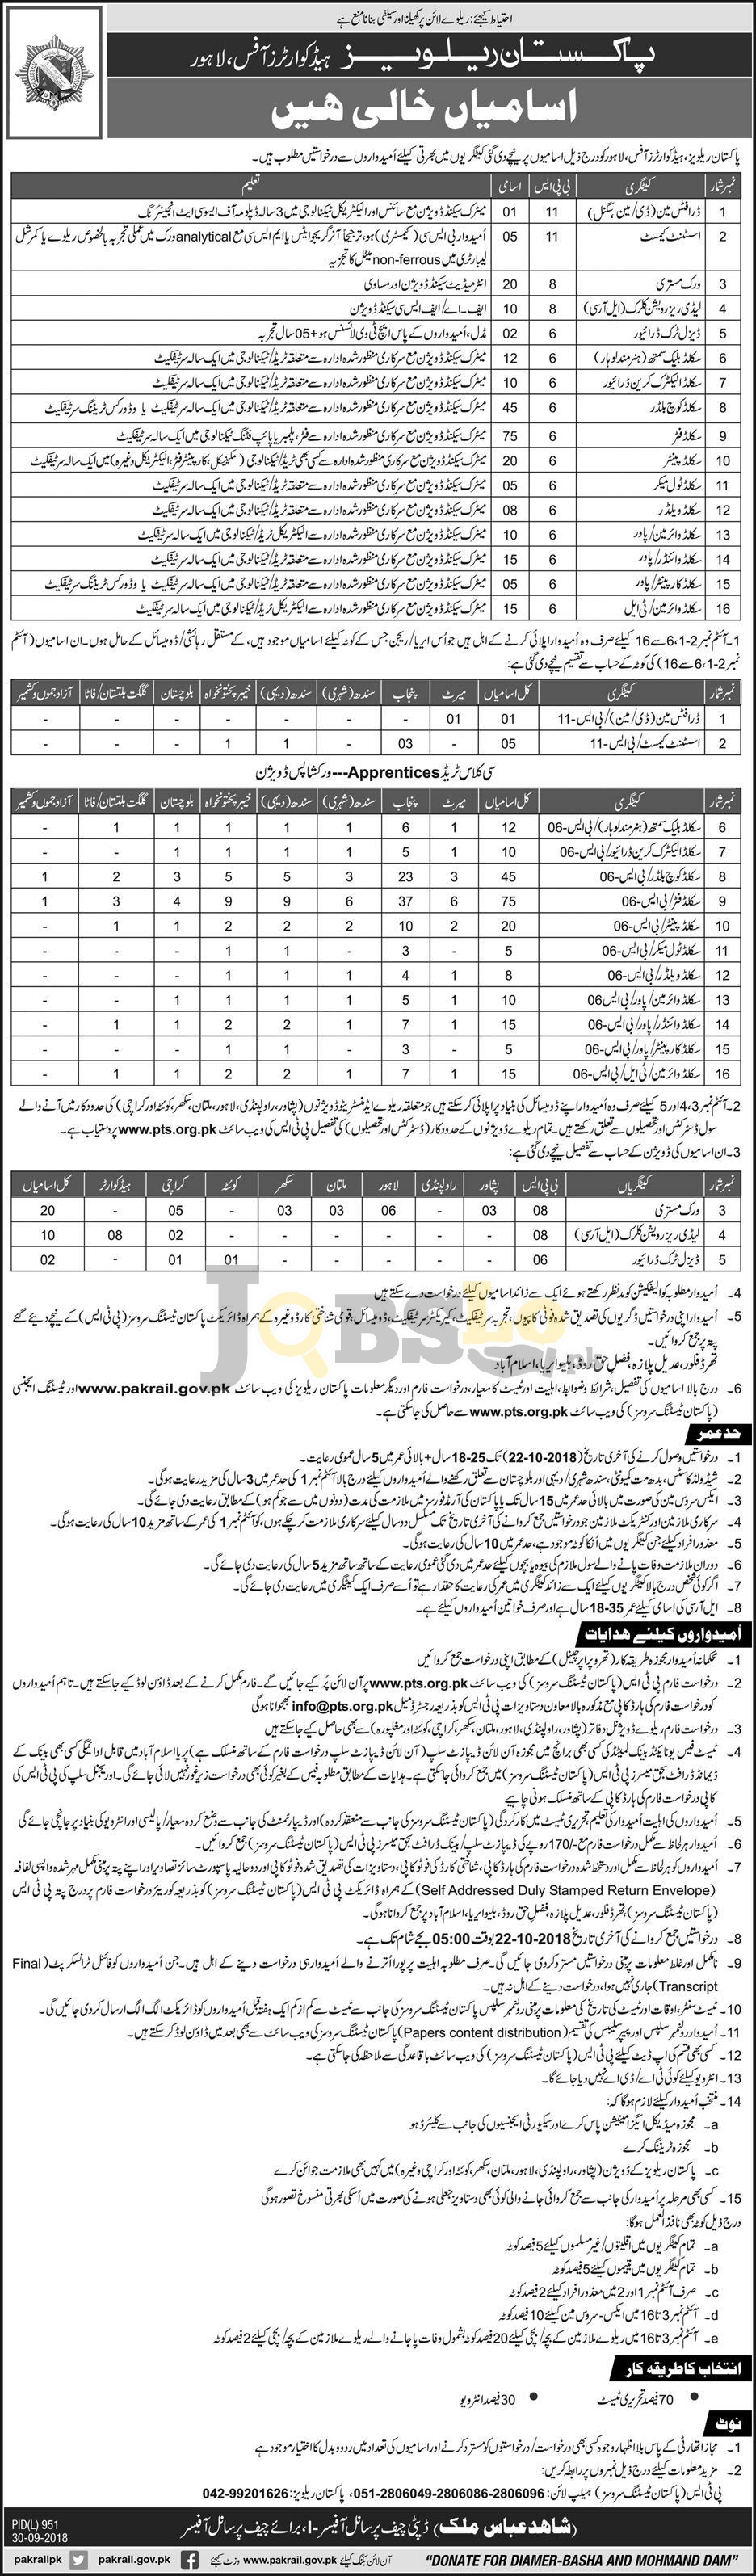 Pakistan Railway Jobs 2018 PTS Application Form Last date